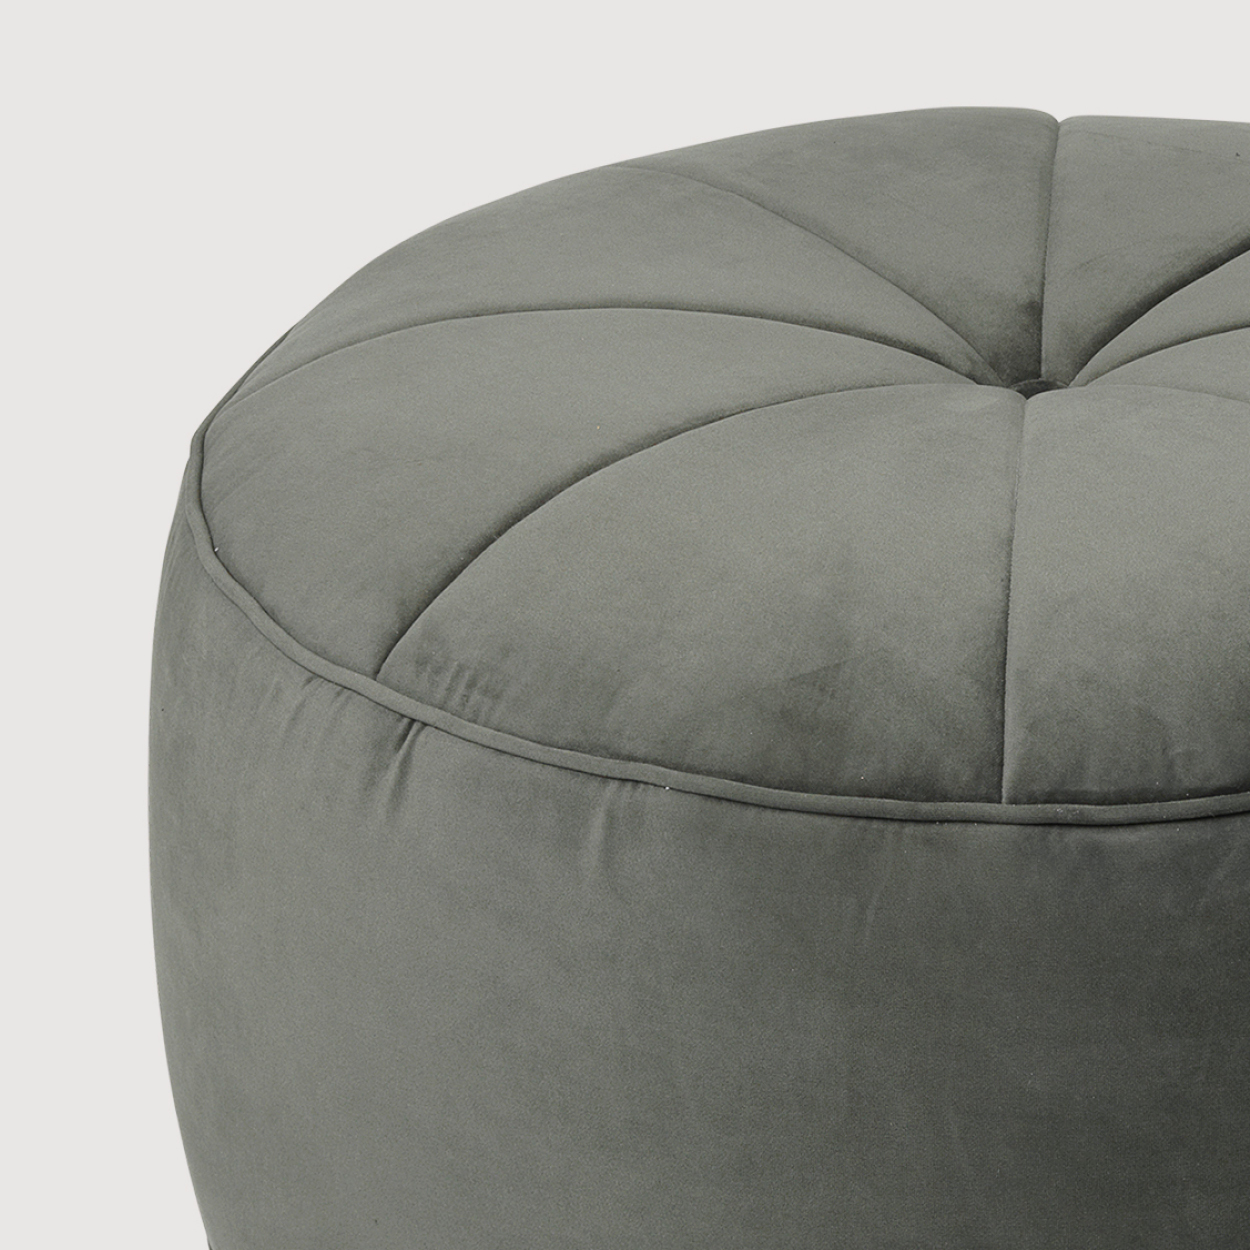 Large Velvet Pouf – Army gallery image